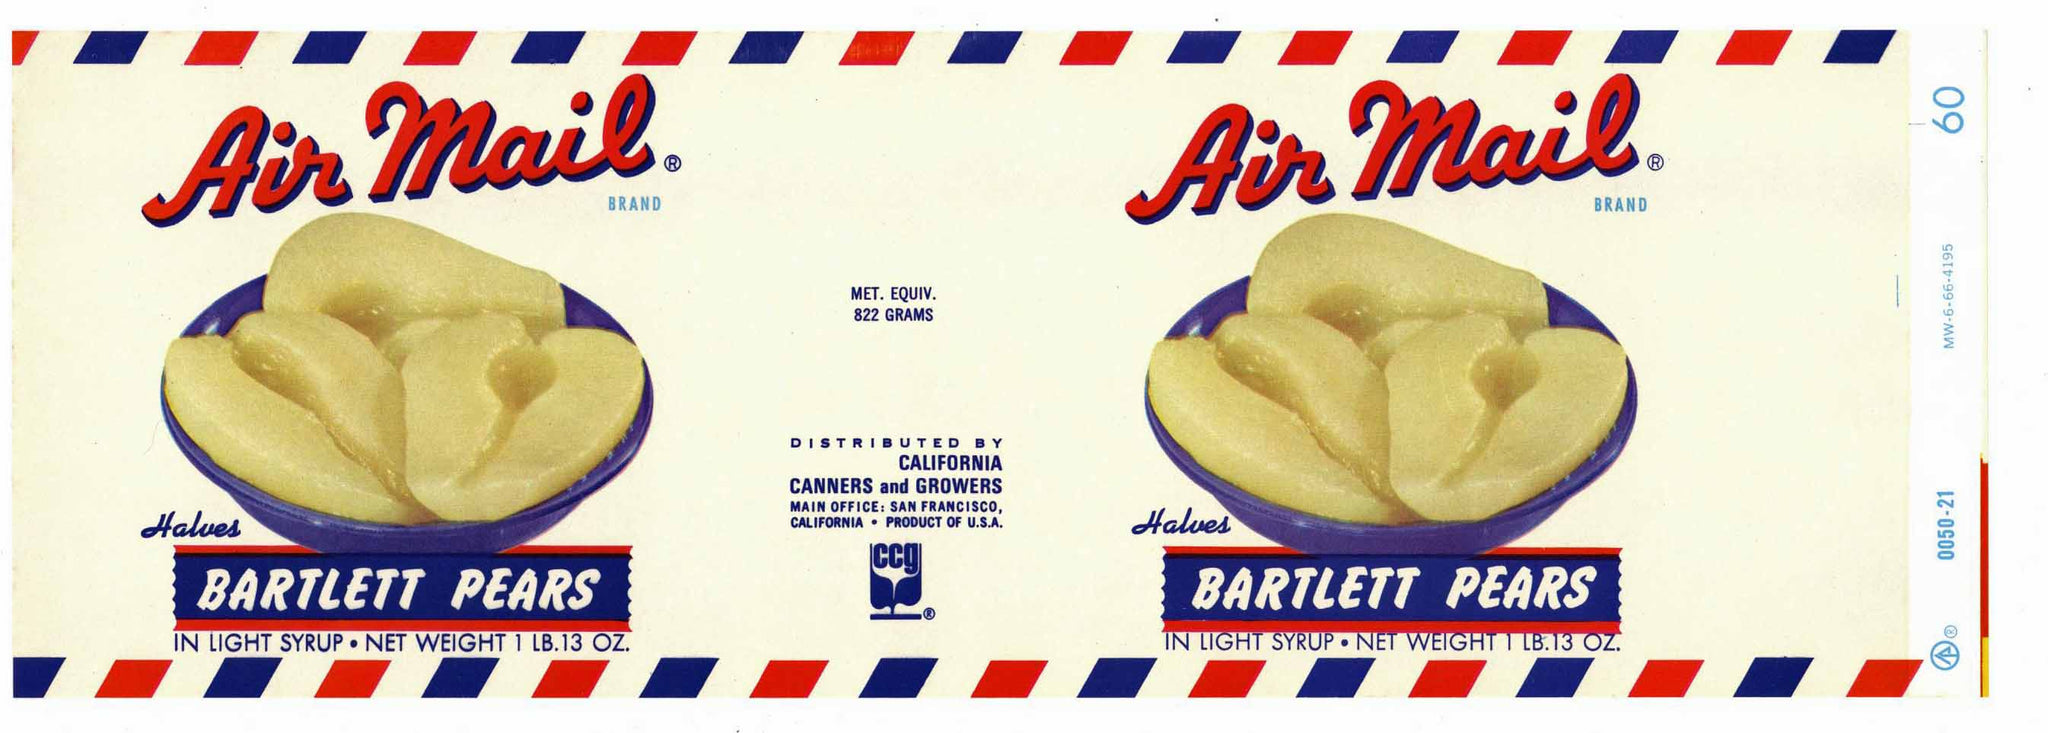 Air Mail Brand Vintage California Canners And Growers Can Label